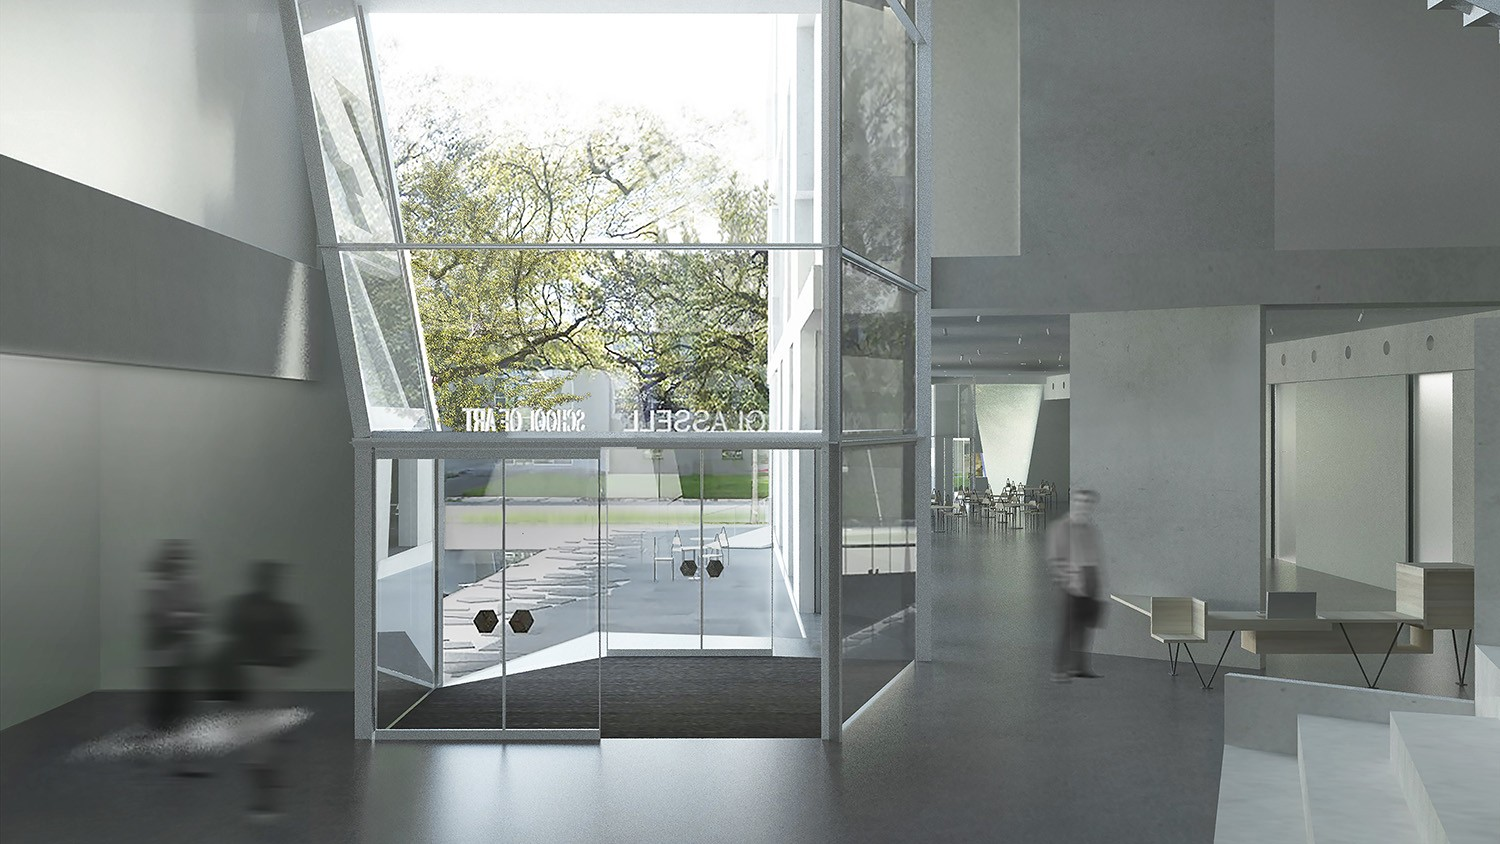 https://s3.us-east-2.amazonaws.com/steven-holl/uploads/projects/project-images/StevenHollArchitects_Glassell_mainvestibule_WH.jpg